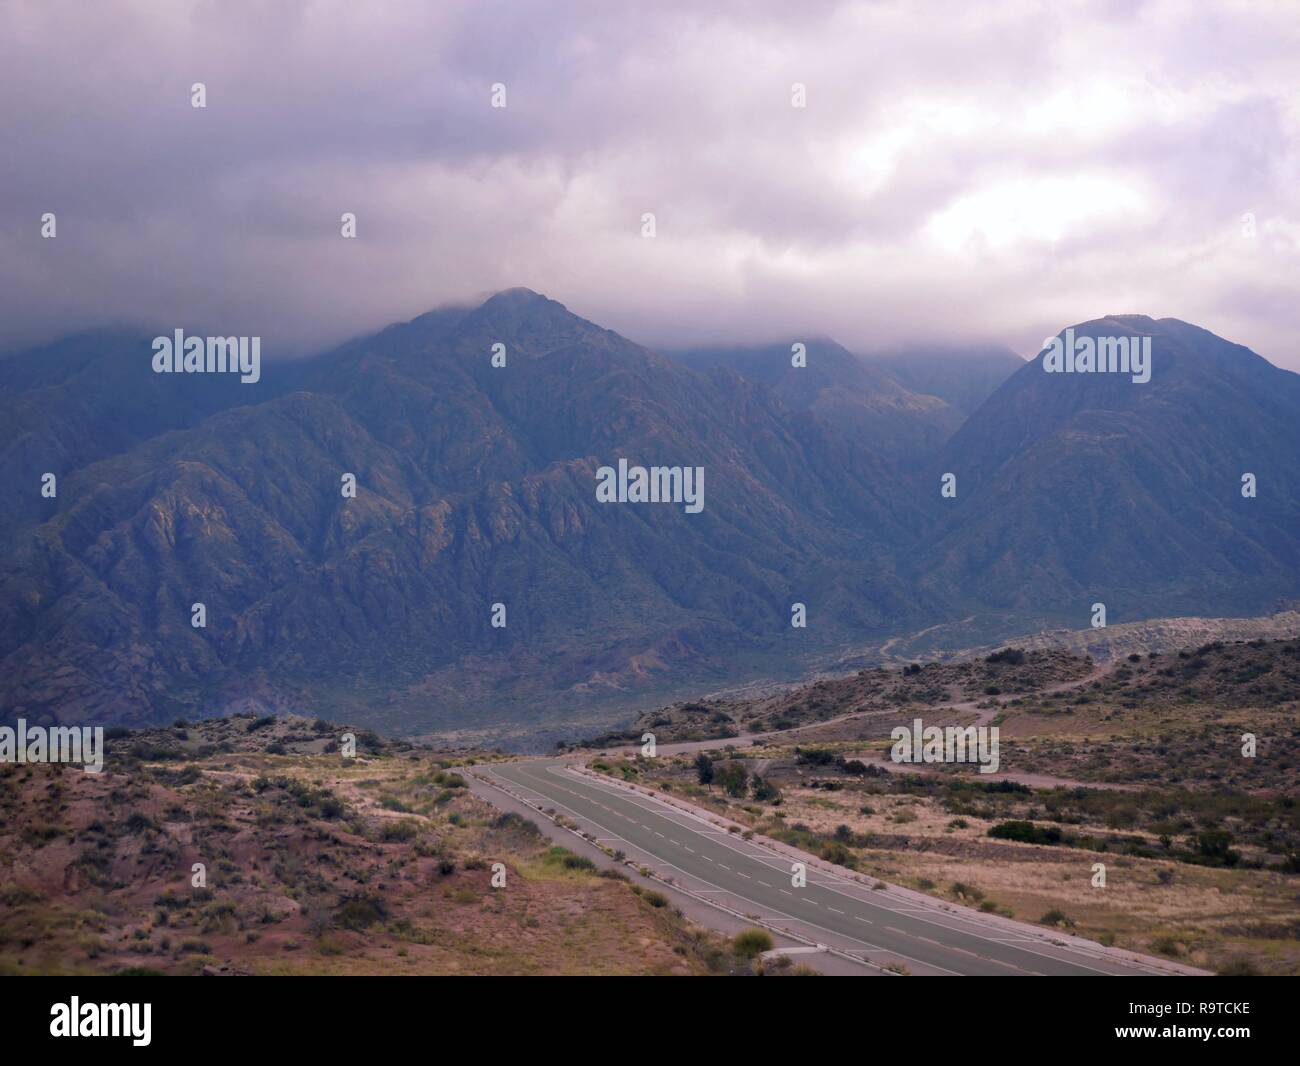 Andes Mountains, Mendoza, Argentina, South America - Stock Image